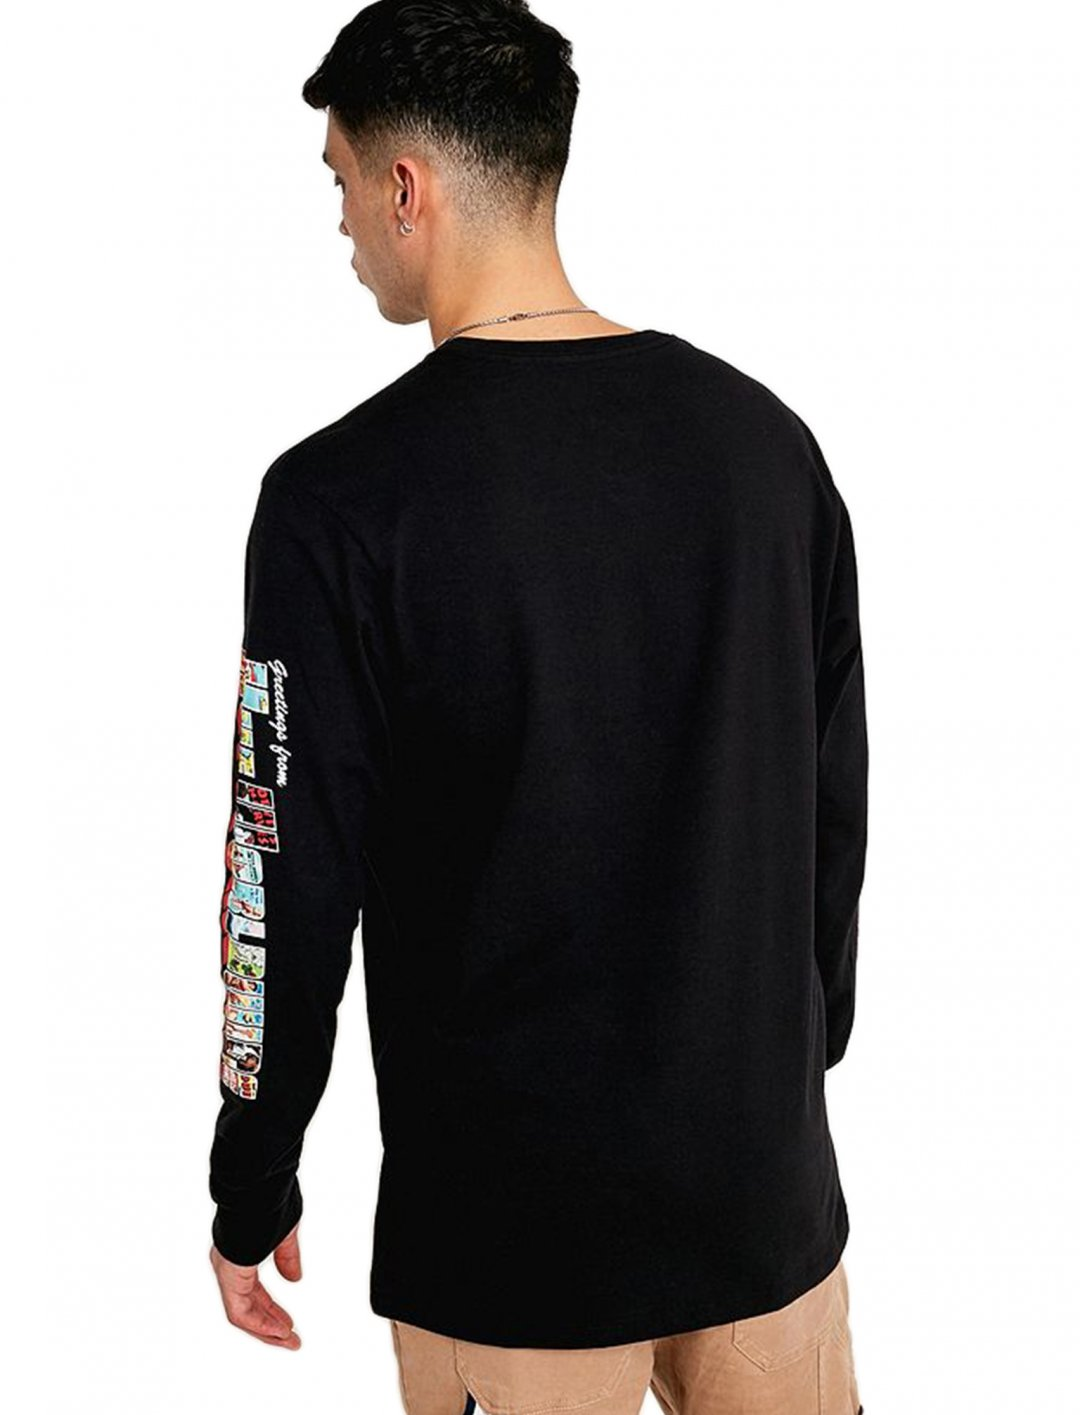 Long Sleeve T-shirt from HUF